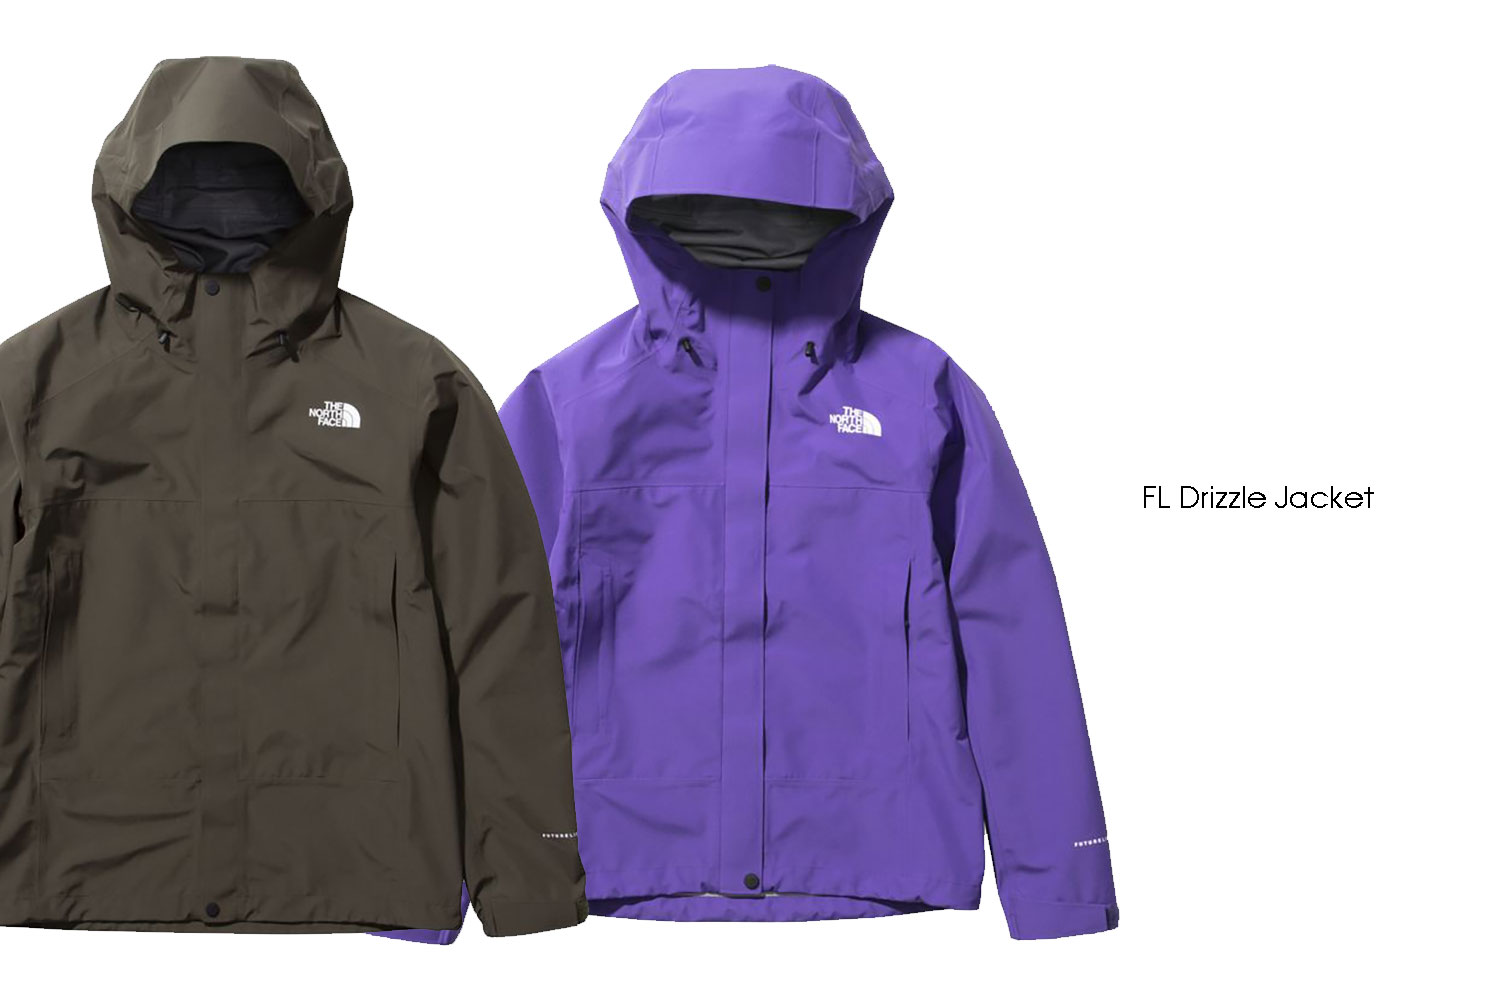 """THE NORTH FACE """"FL Drizzle Jacket"""""""